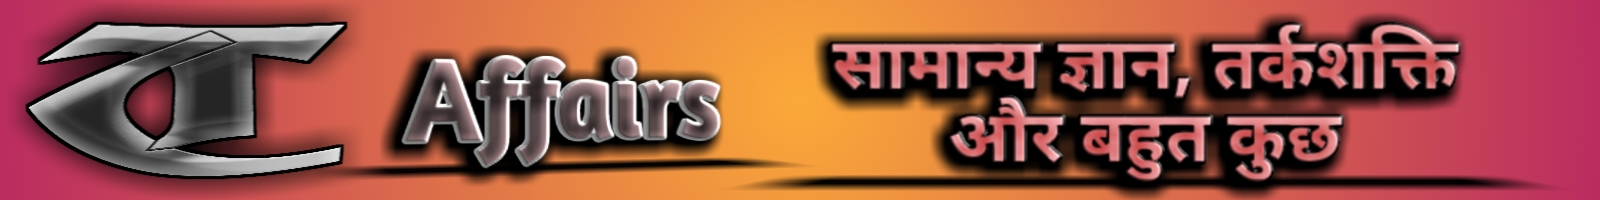 Current Affairs, General knowledge, Reasoning in hindi